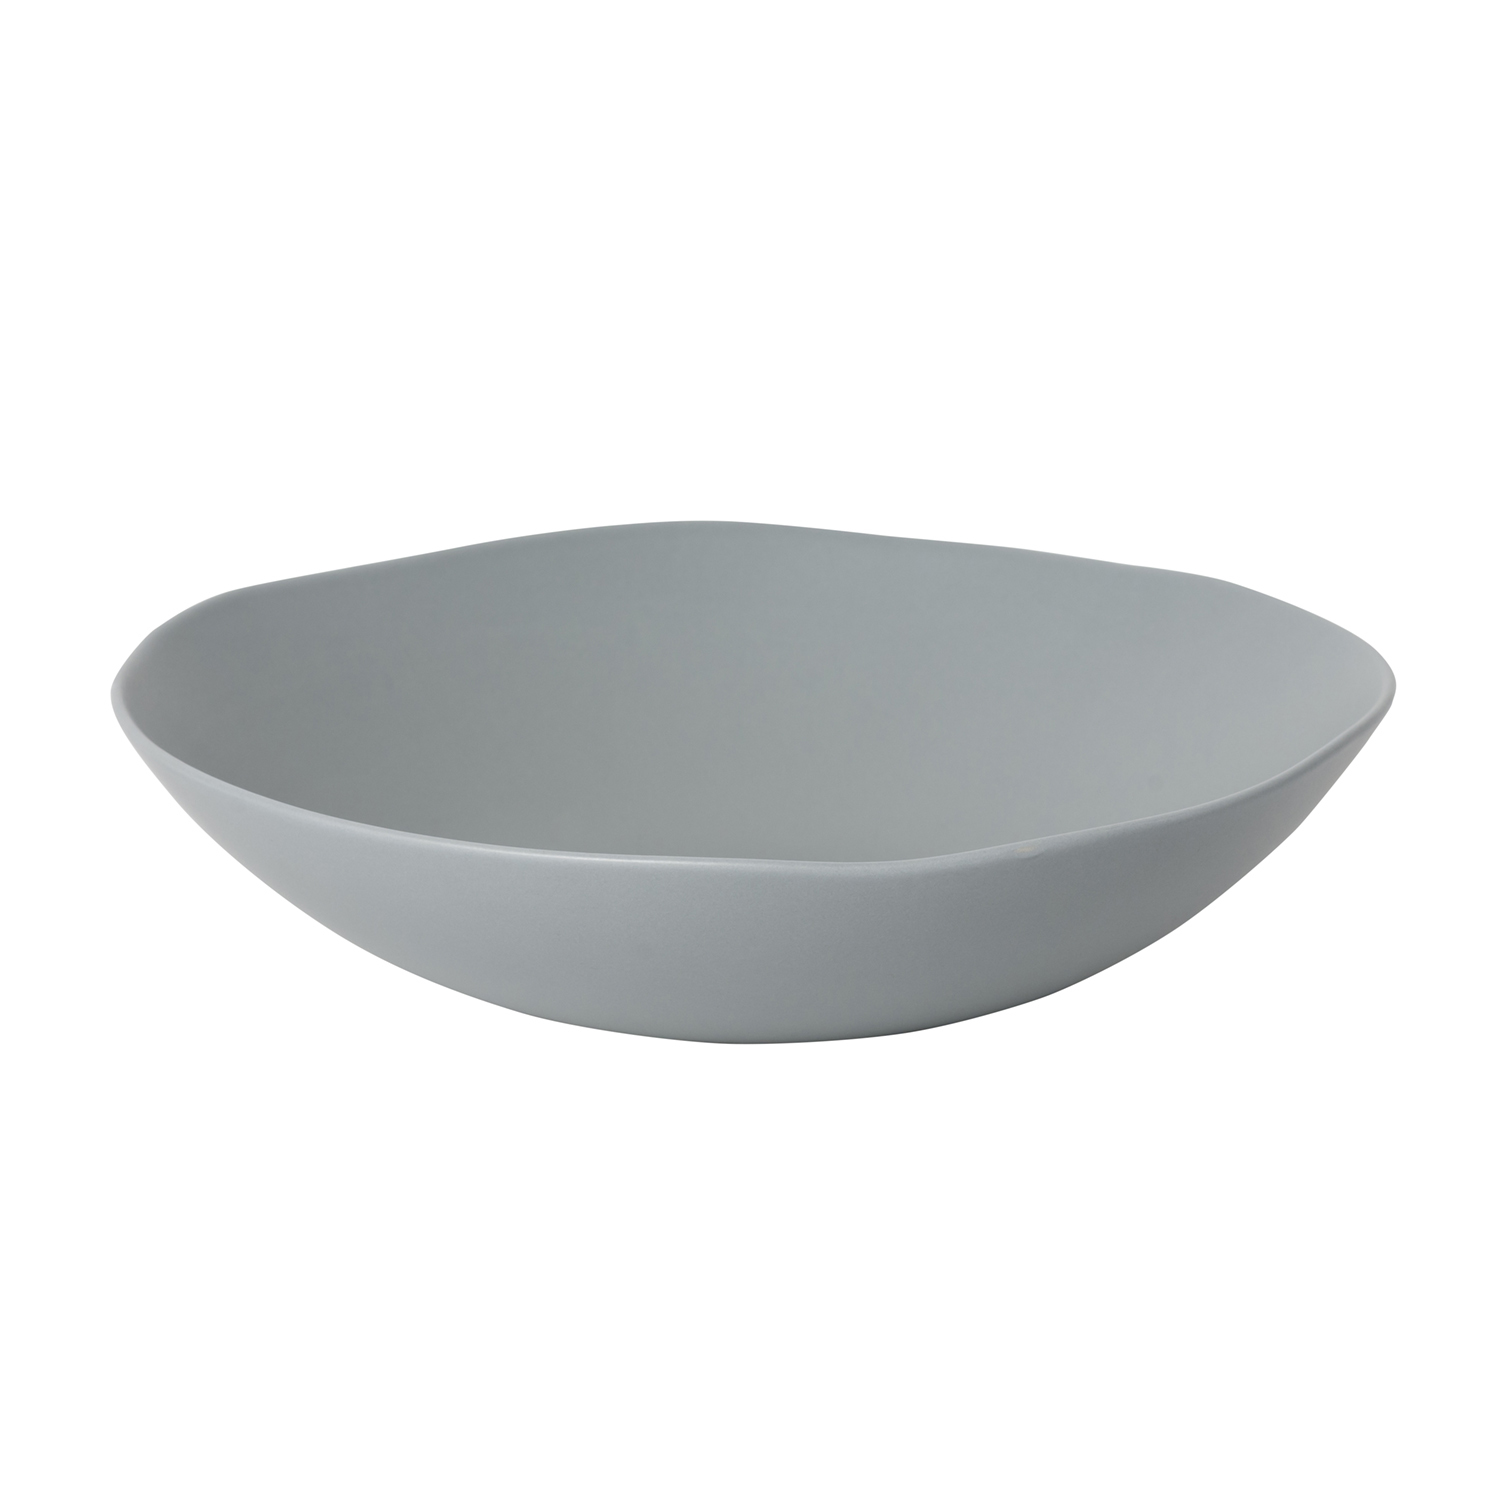 General Eclectic: Freya Serving Bowl - Mist image